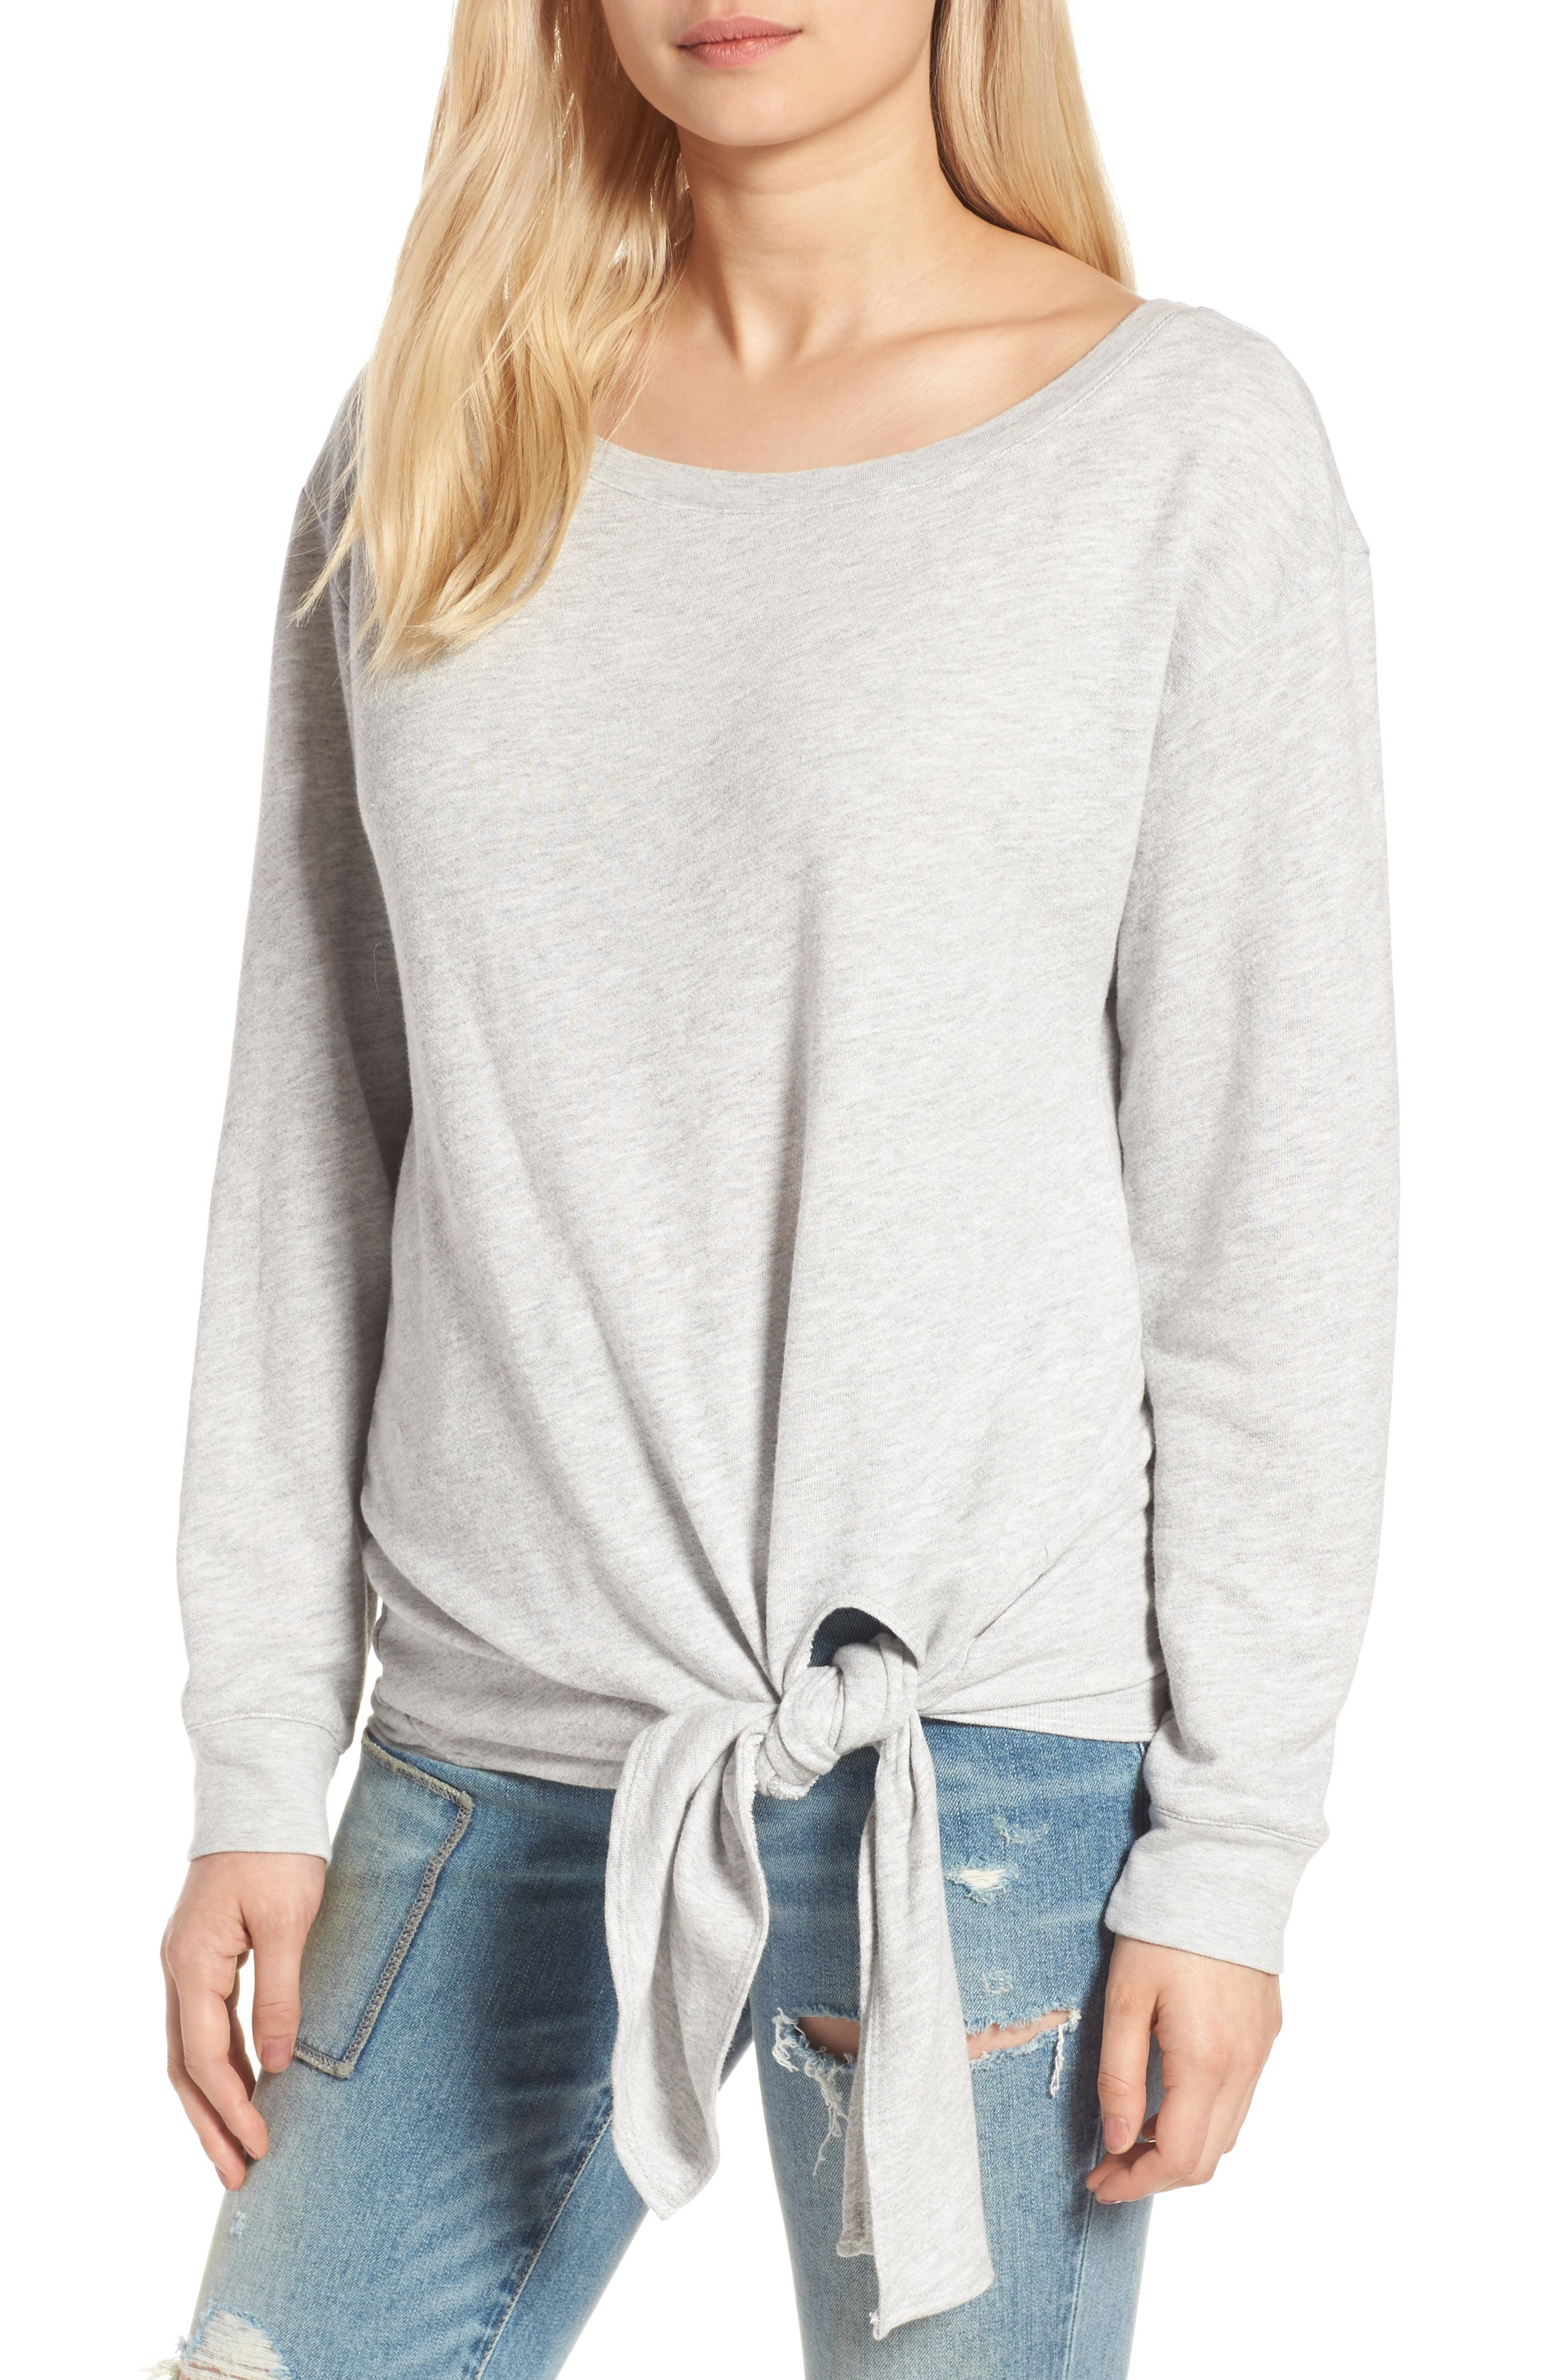 HINGE Tie Front Pullover, Main, color, 020